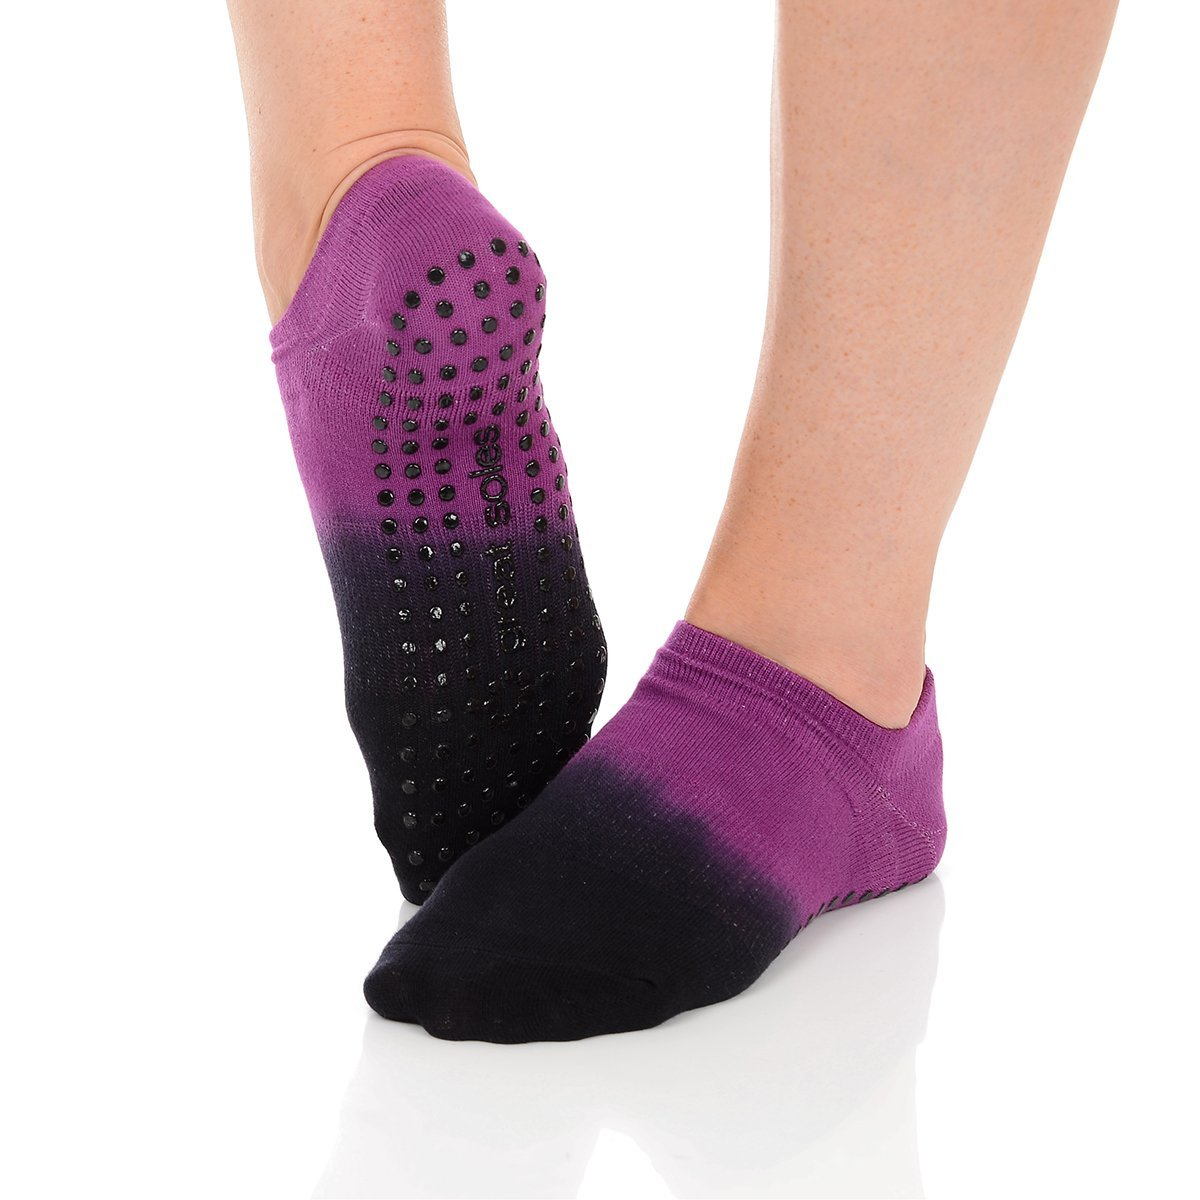 Great Soles Ombre Dyed Grip Socks for Women - Non Slip Yoga Socks for Pilates, Barre, Ballet (Berry/Black) by Great Soles (Image #4)